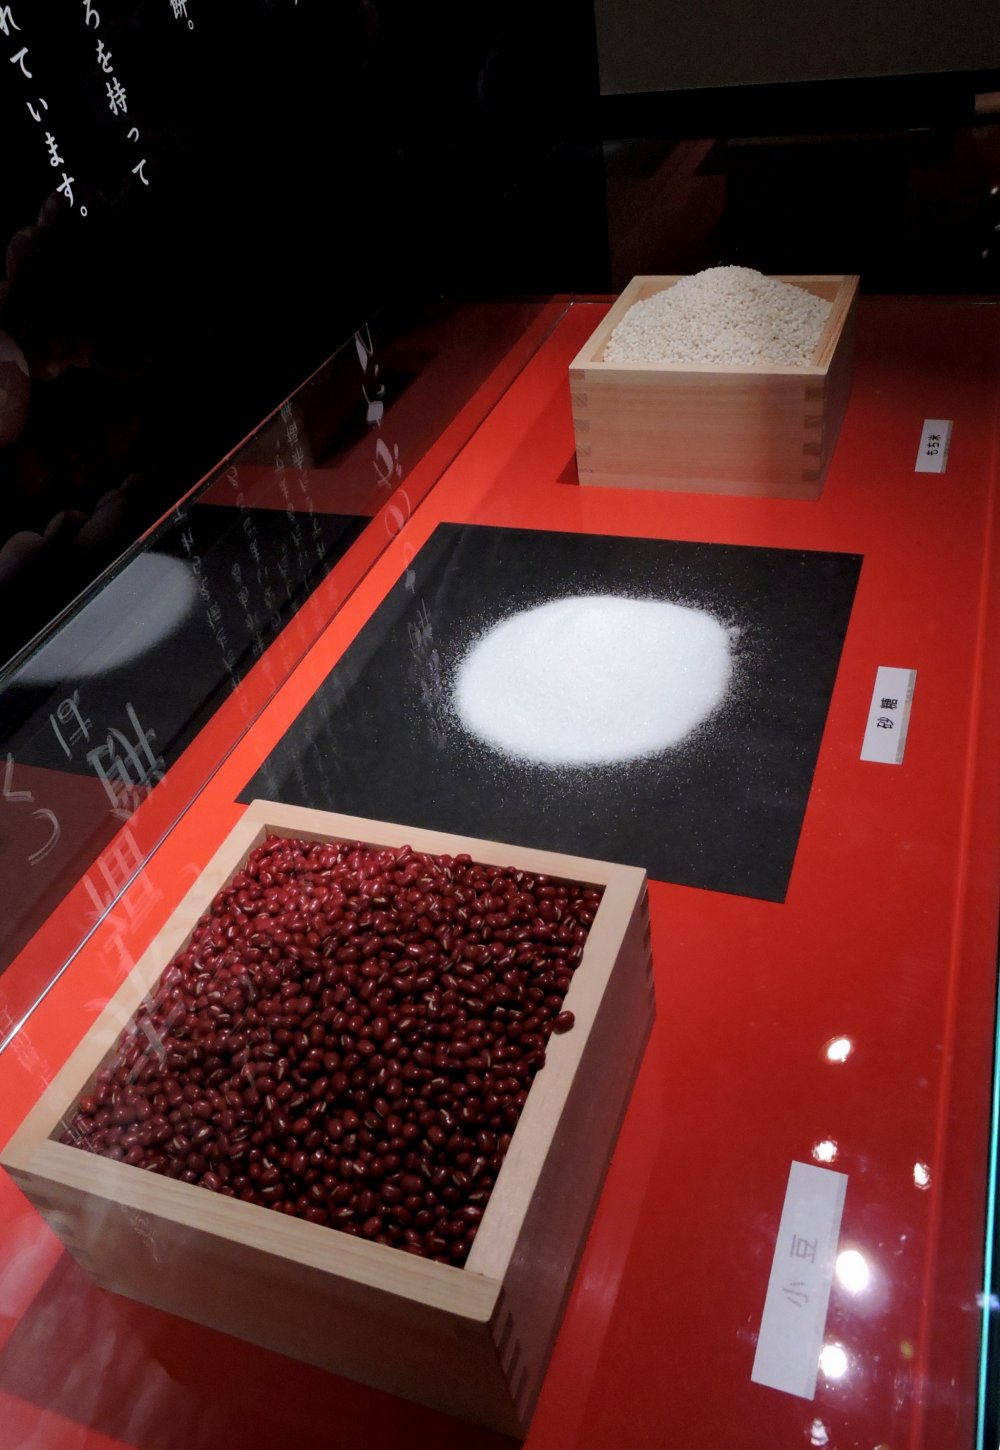 The ingredients of traditional Japanese sweets - red adzuki beans, rice and sugar